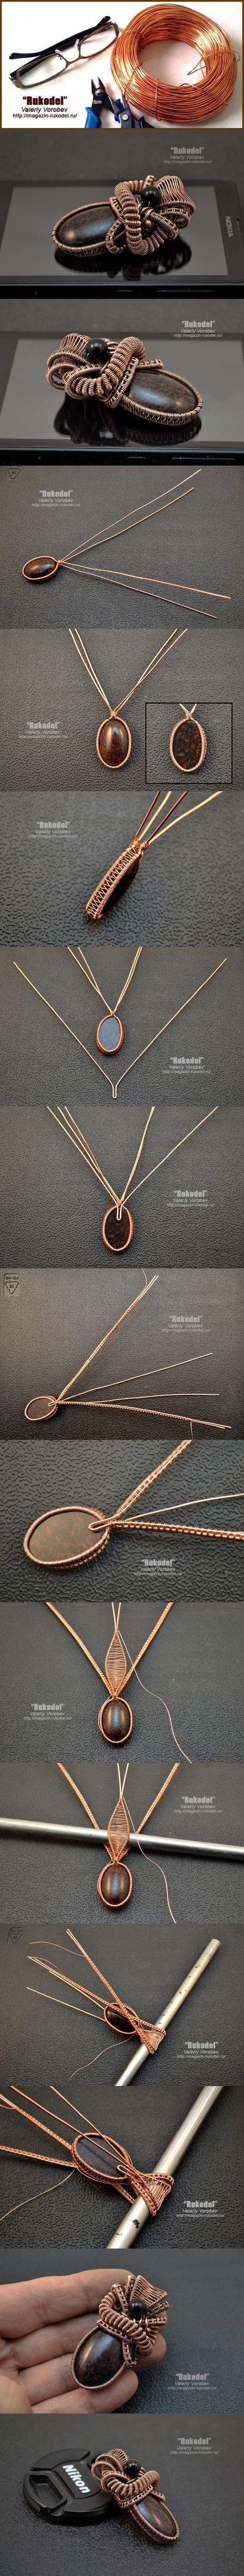 992 best jewelry tutorials images on Pinterest | Wire jewelry, Wire ...